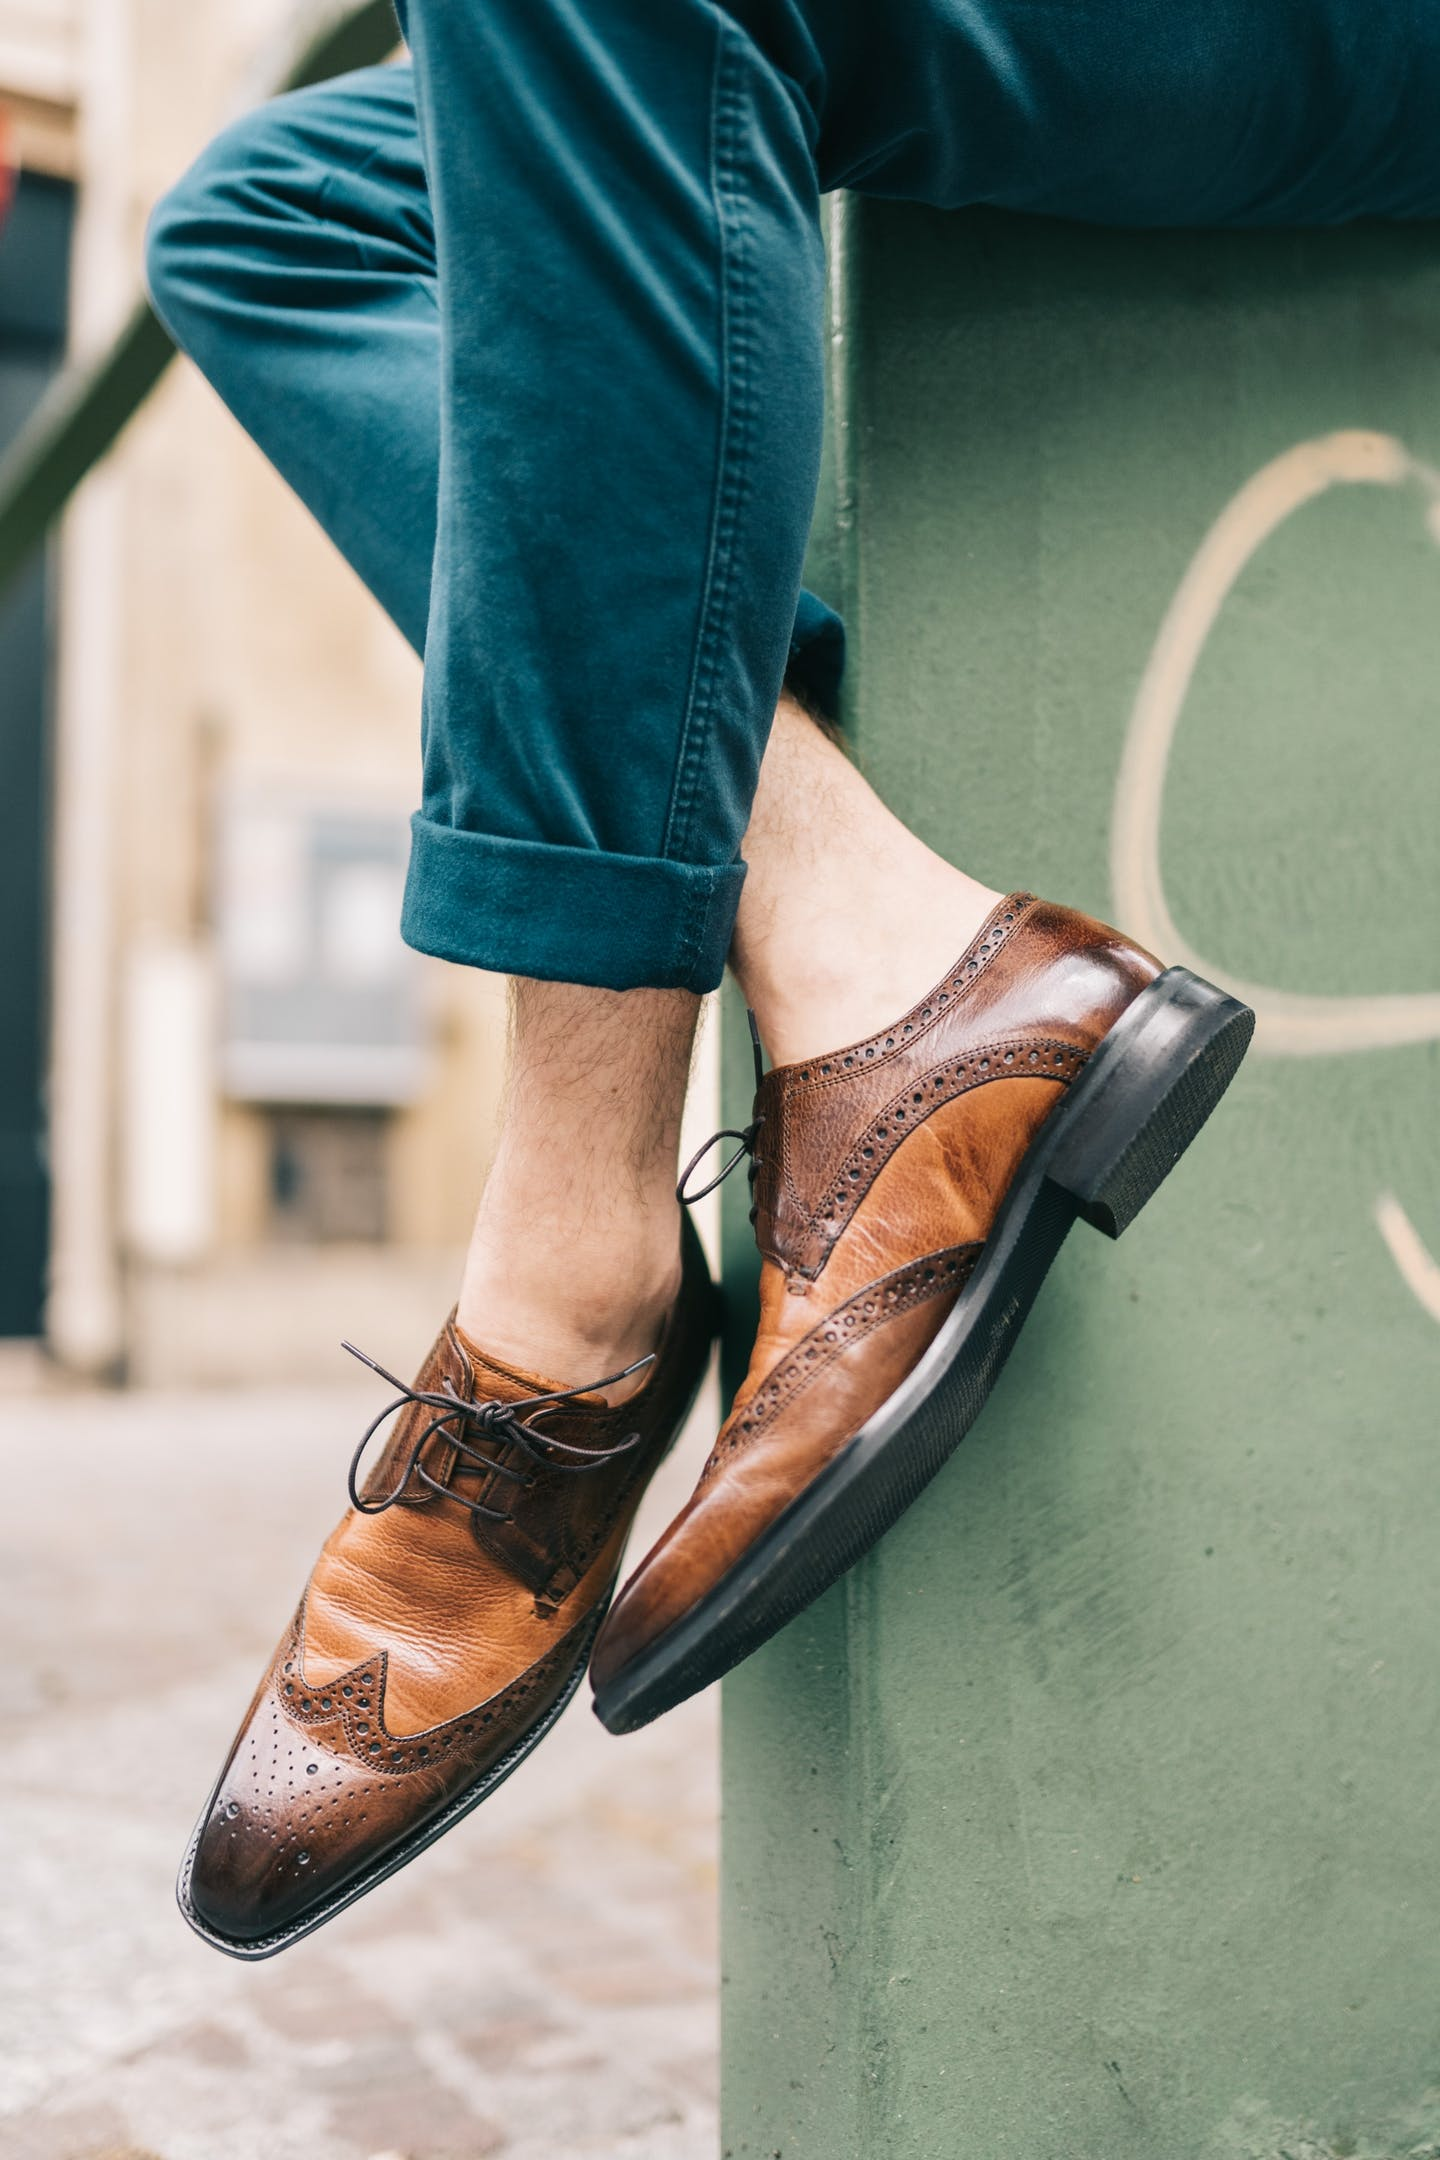 London inspired collection of classic men shoes Melvin & Hamilton